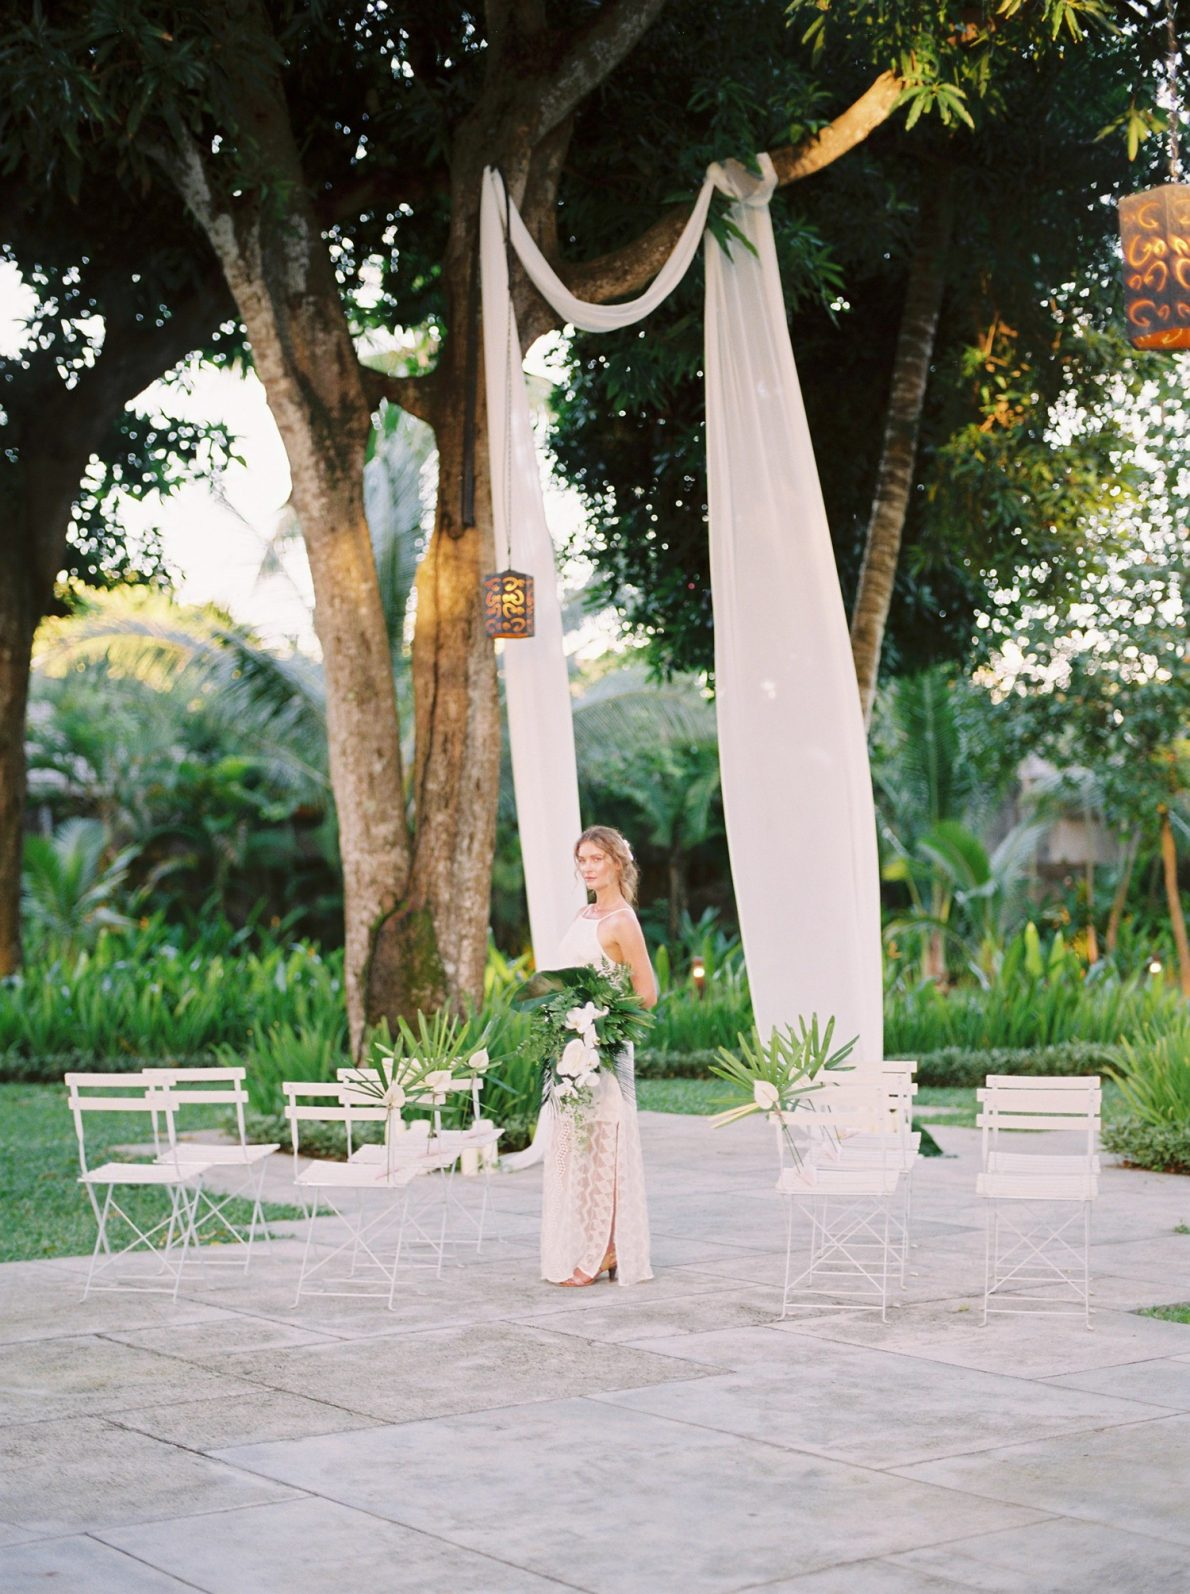 Outdoor Ceremony Ubud Bali Wedding Photos at Cuca Restaurant Jimbaran